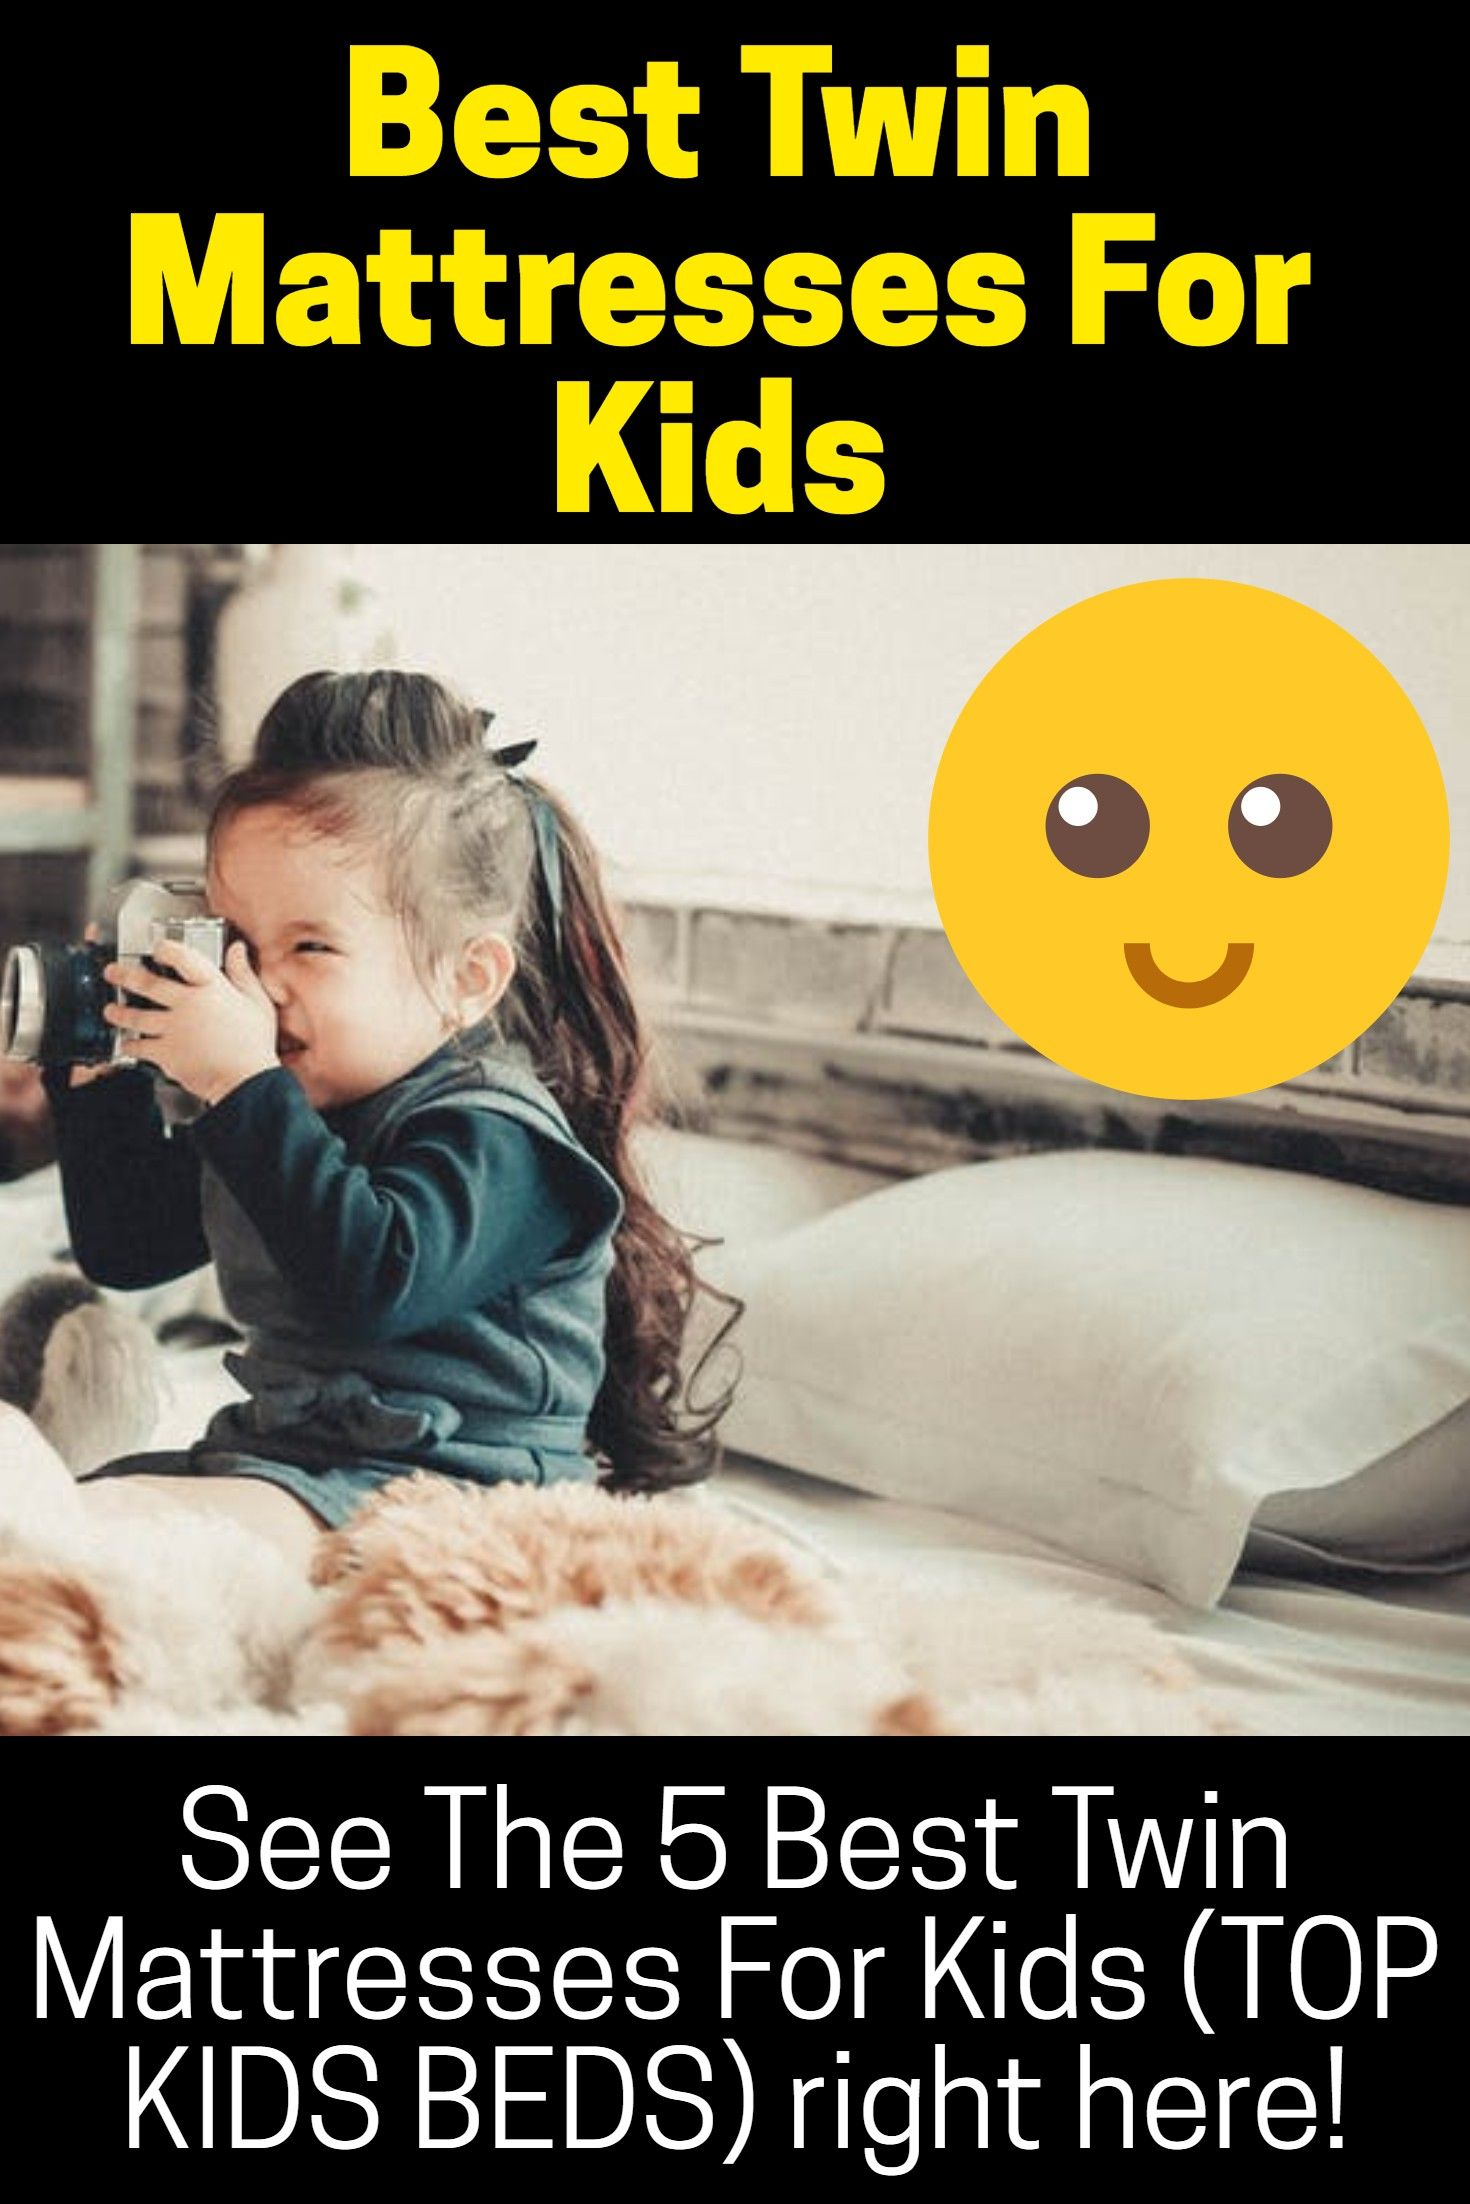 Best Twin Mattress For Kid See The 5 Best Twin Mattresses For Kids Top Kids Beds Right Here See Now Order In 2020 Twin Mattress Kids Top Twin Toddlers